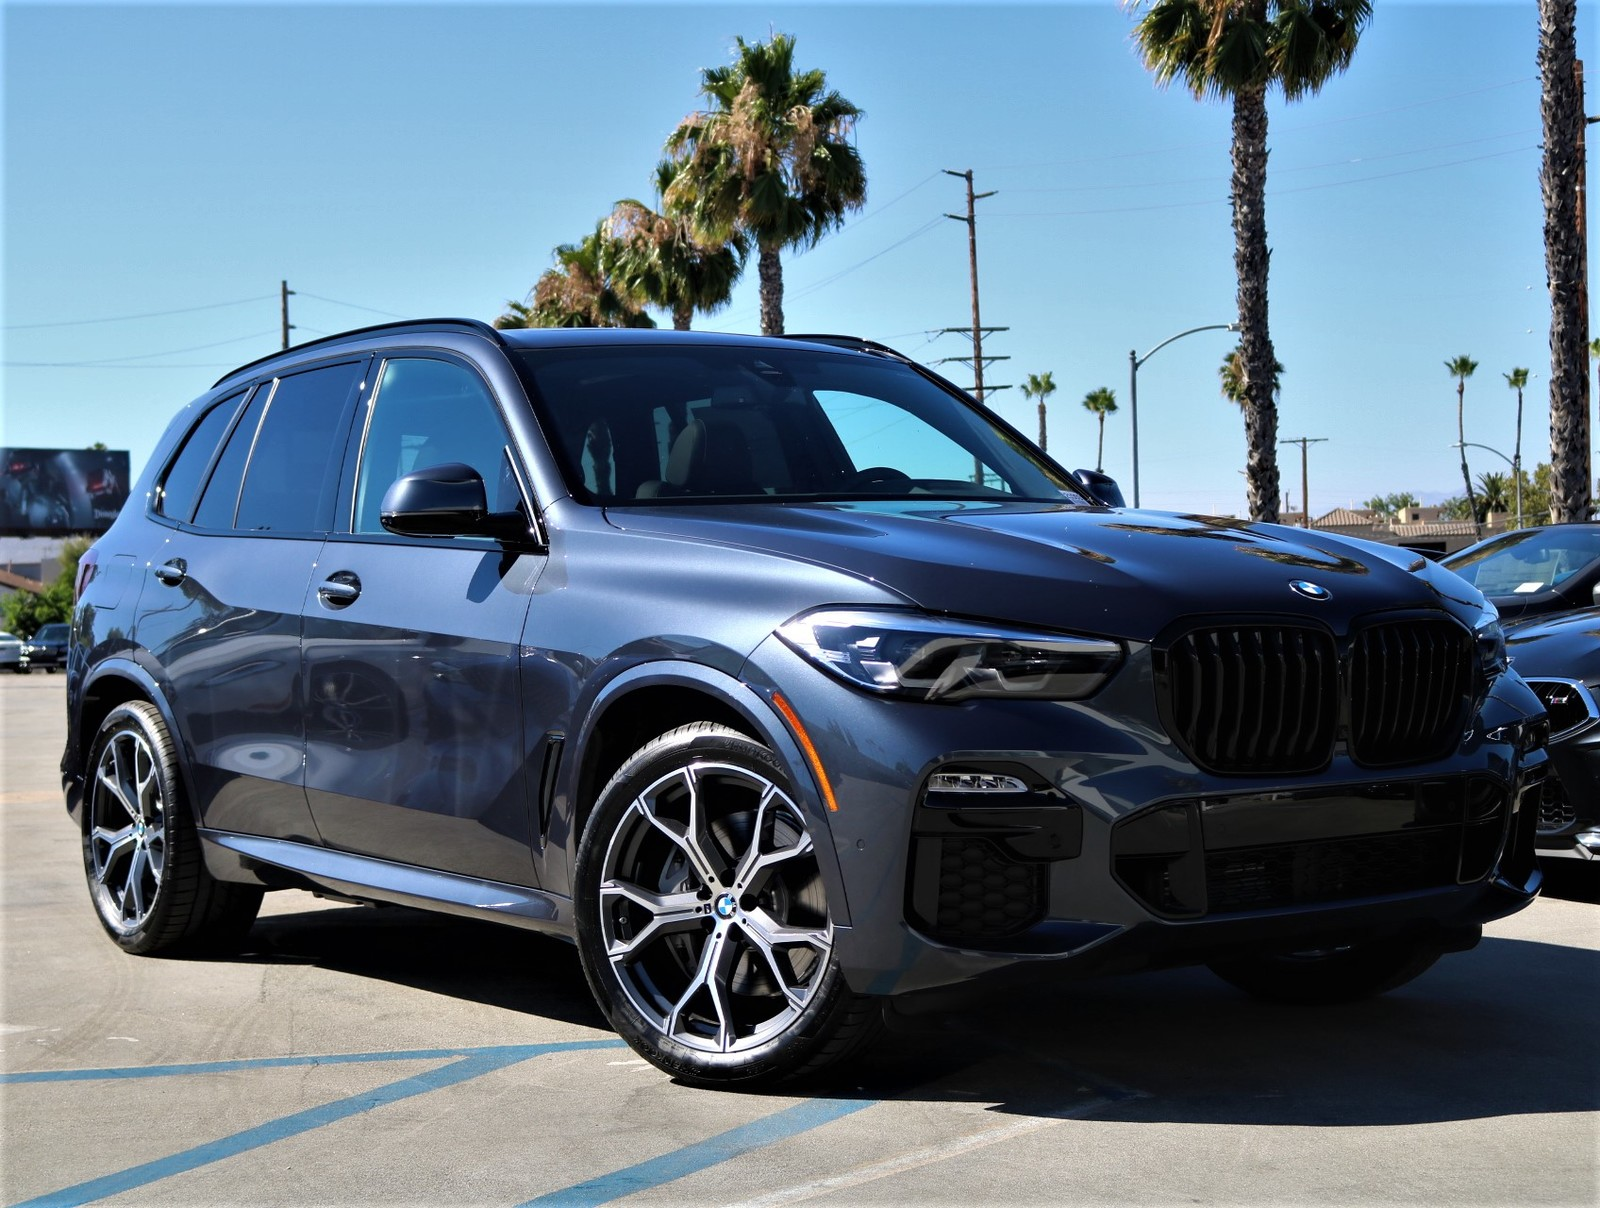 New 2021 BMW X5 xDrive45e SUV in North Hollywood #21003 ...